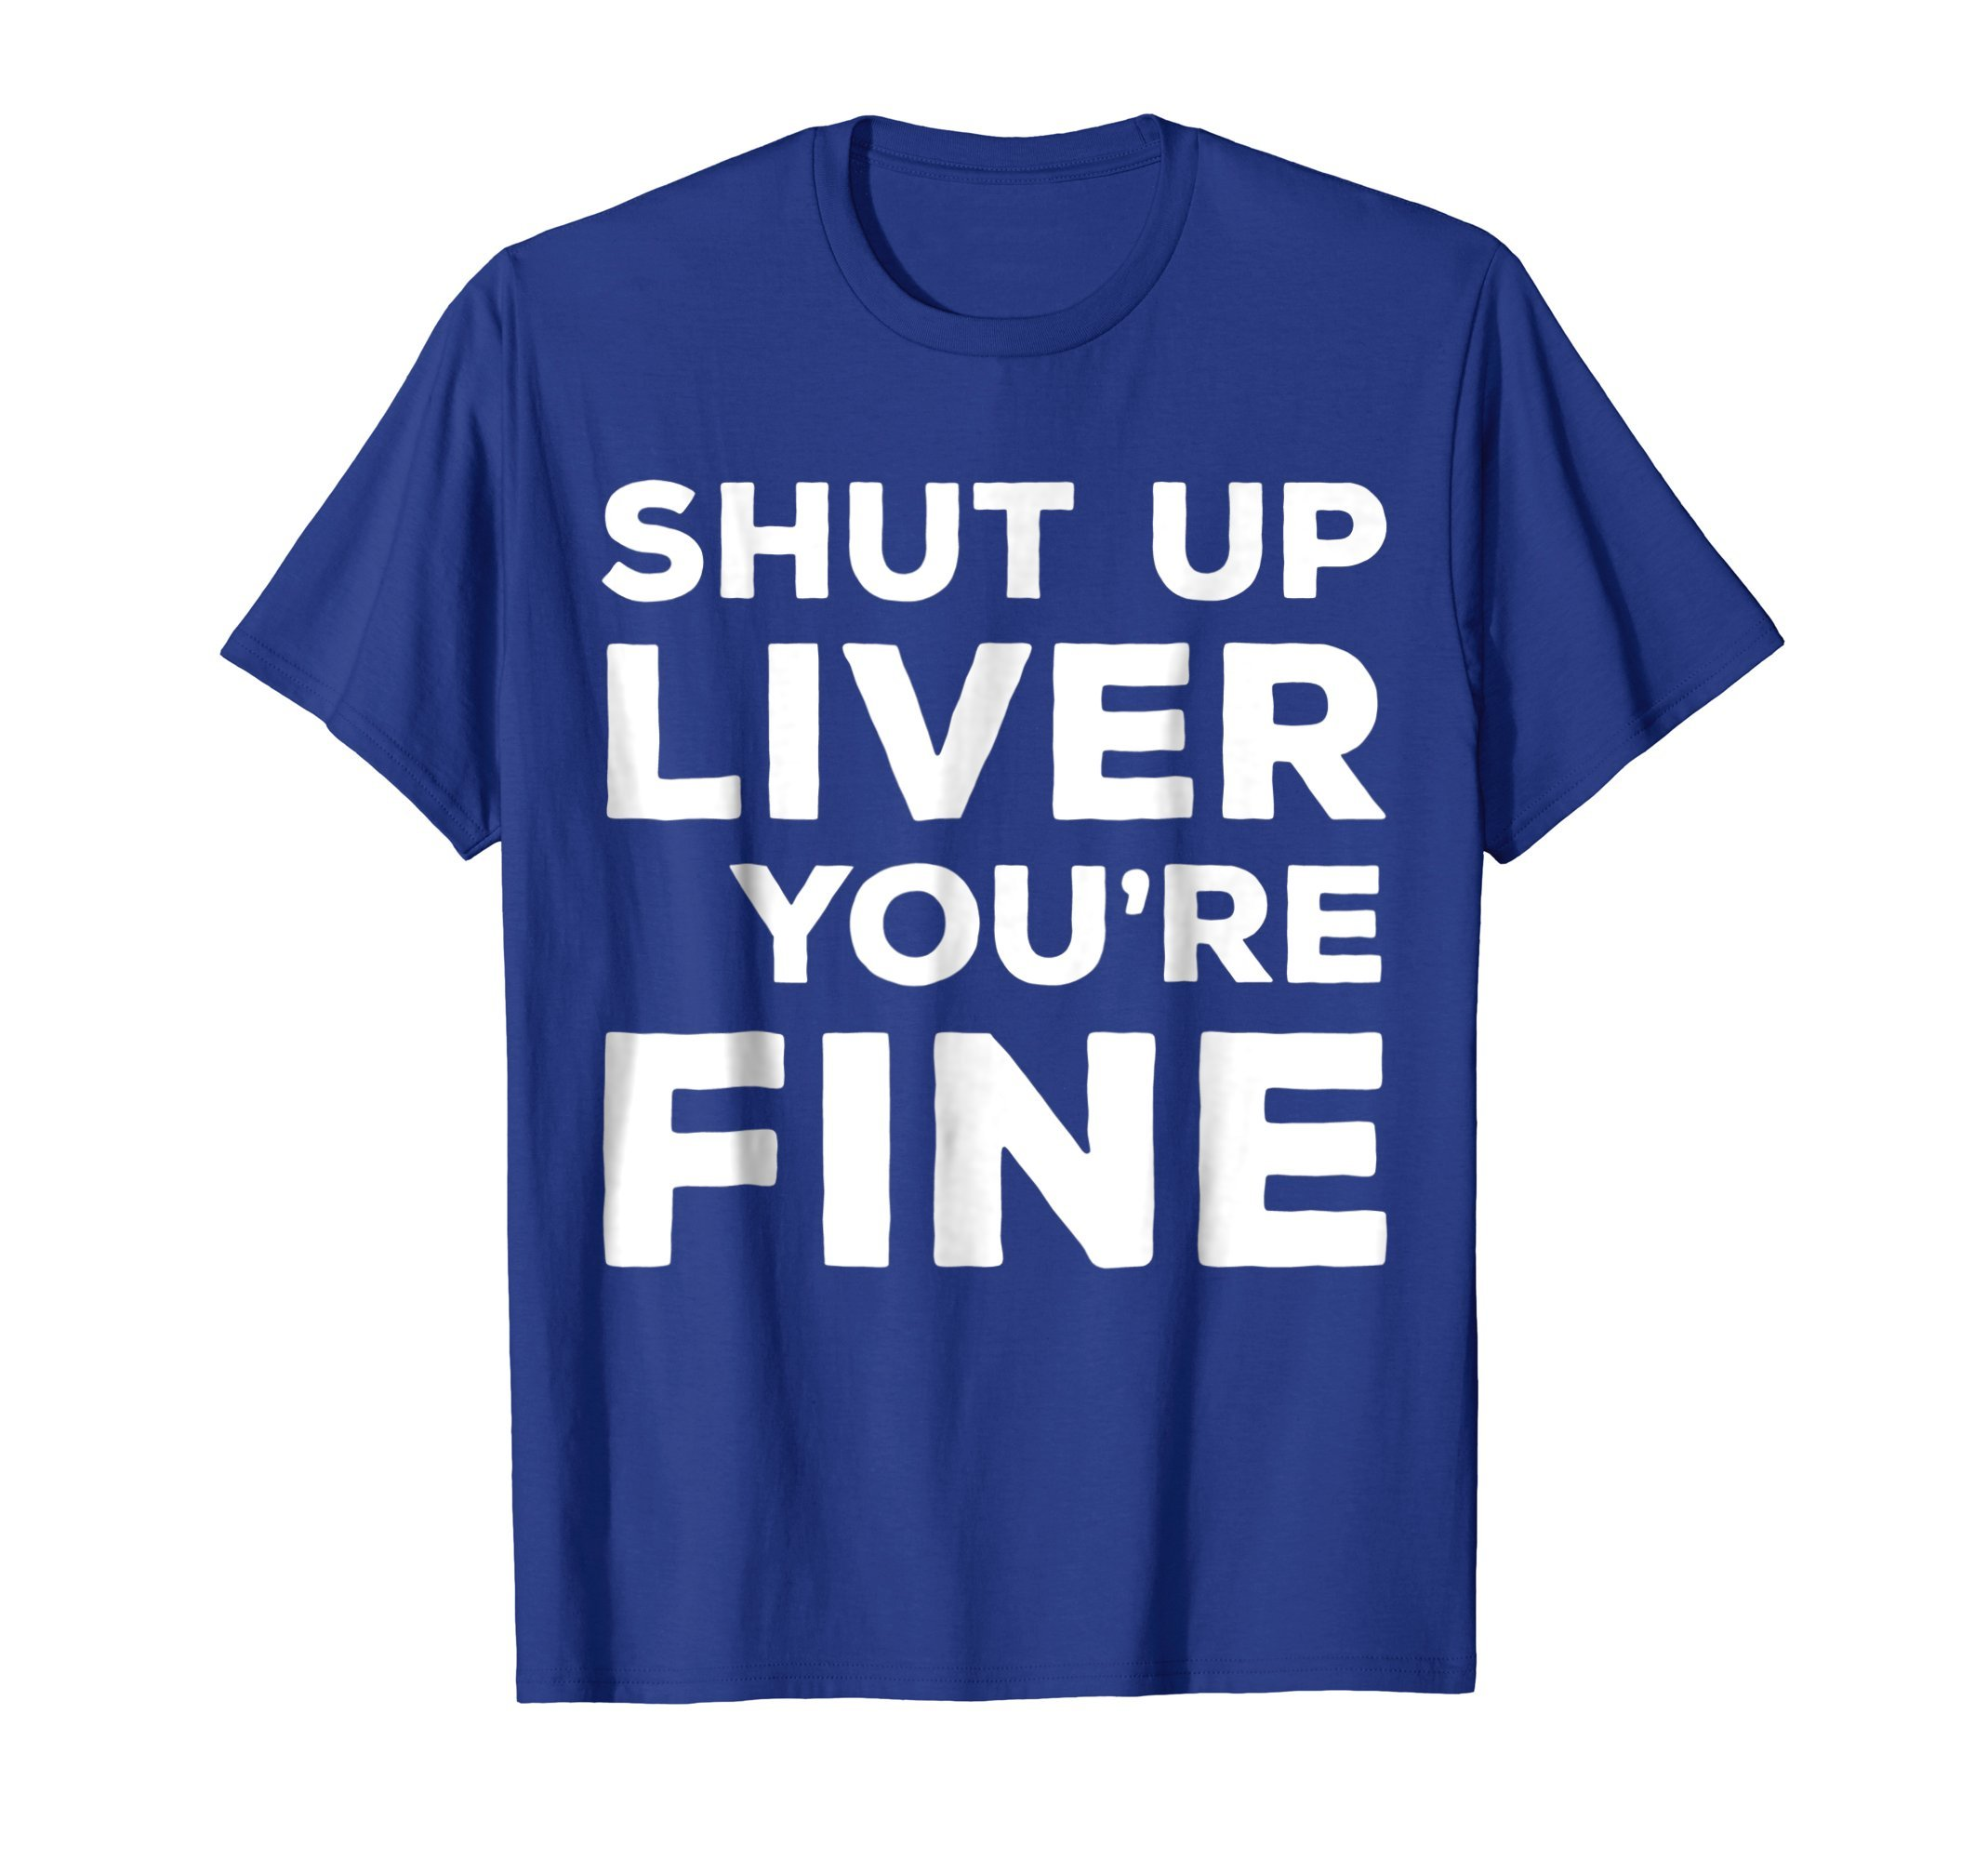 Mens Shut Up Liver You're Fine T-Shirt Funny Drinking Shirt Large Royal Blue by Shut Up Liver Youre Fine Shirts (Image #1)